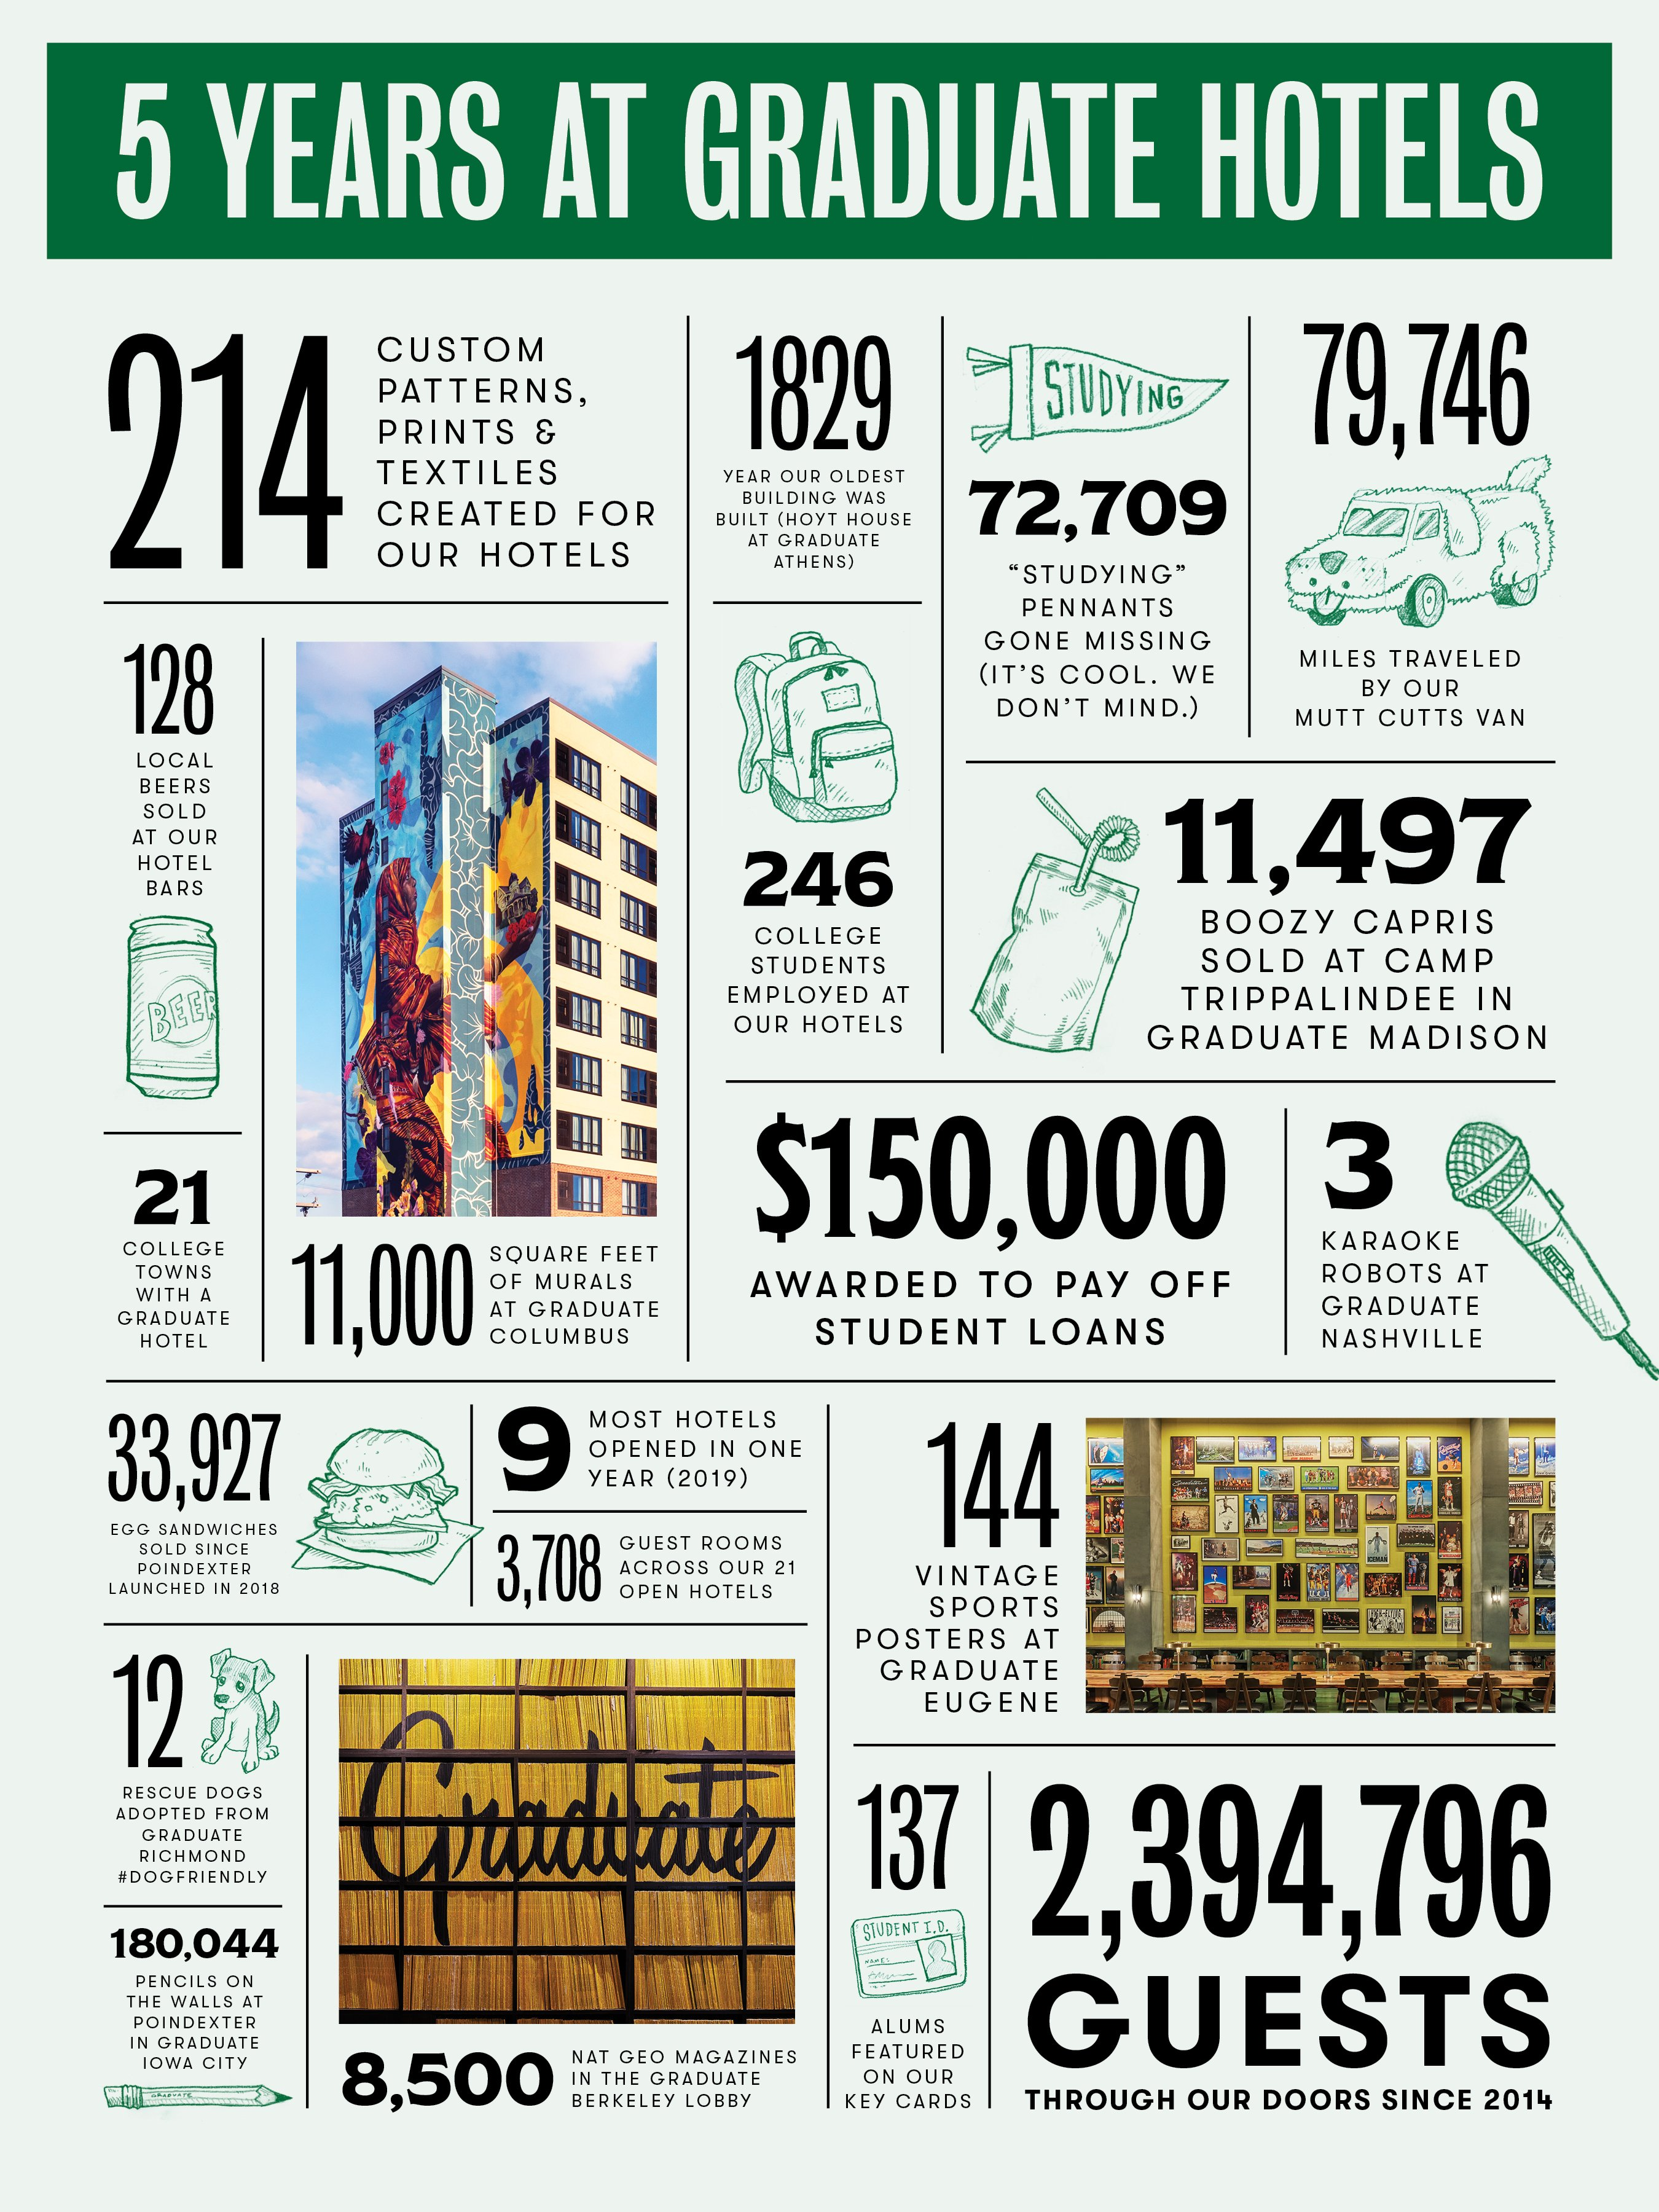 Infographic showing stats about Graduate Hotels